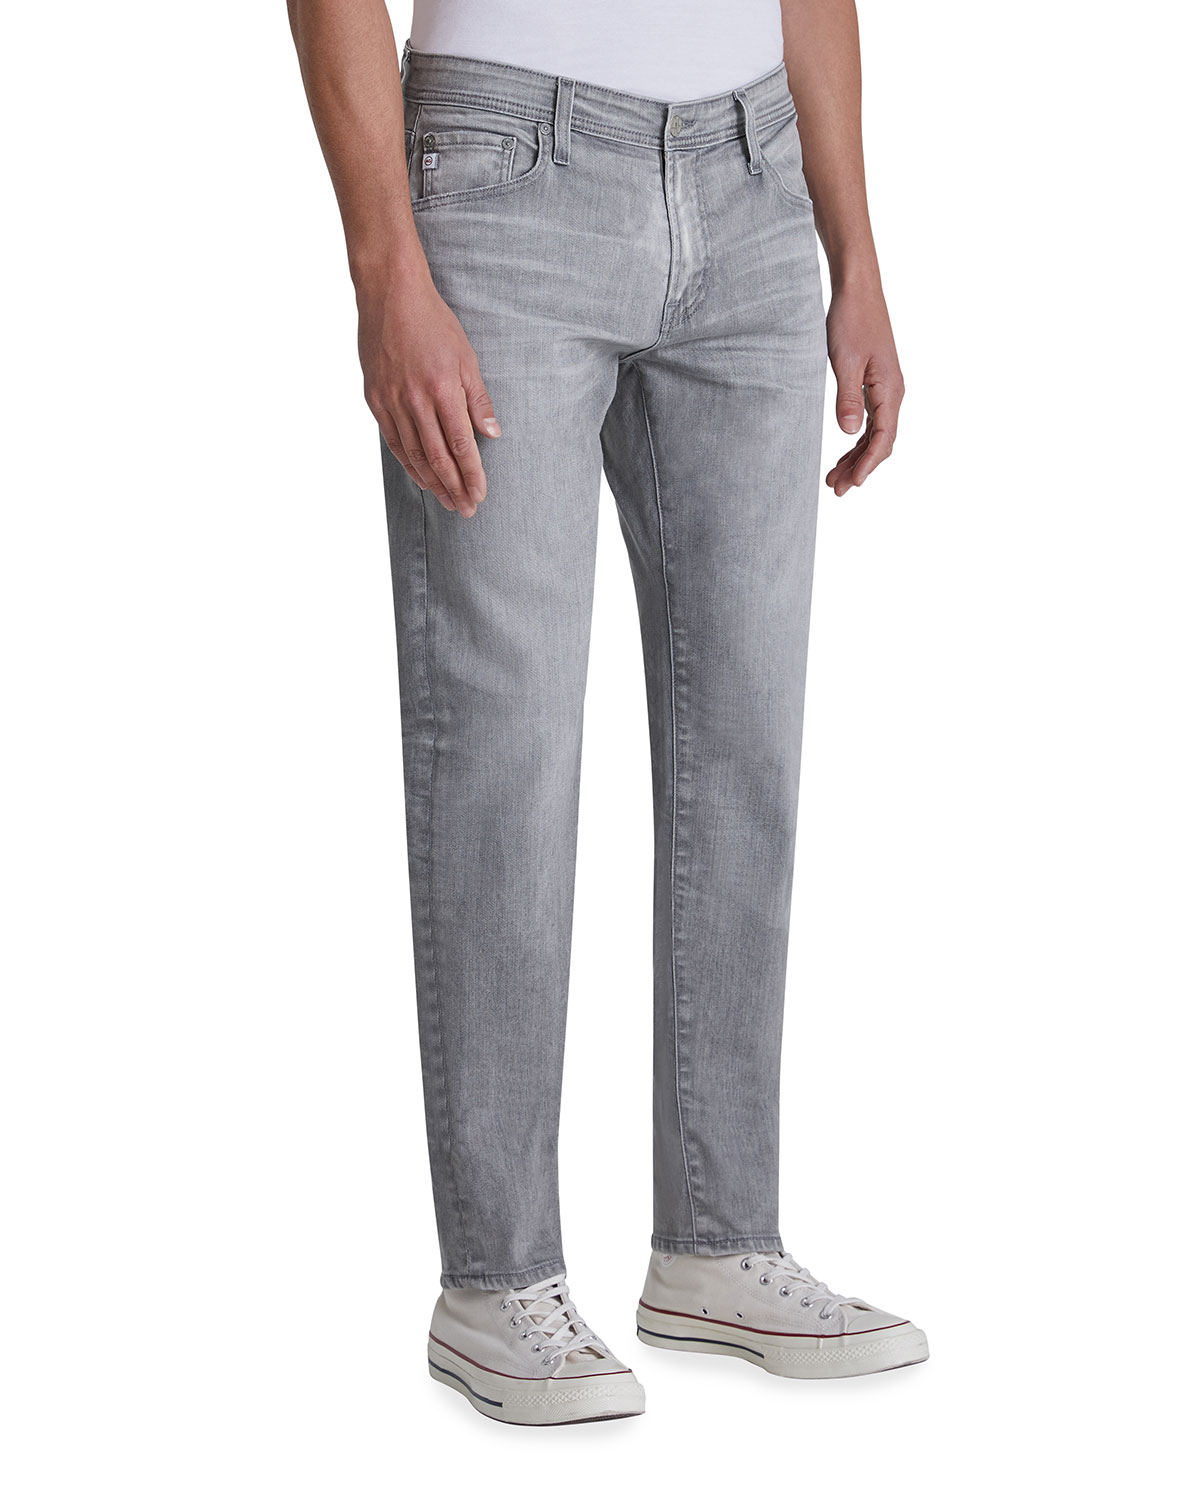 Men's Graduate Whiskered Tapered Jeans